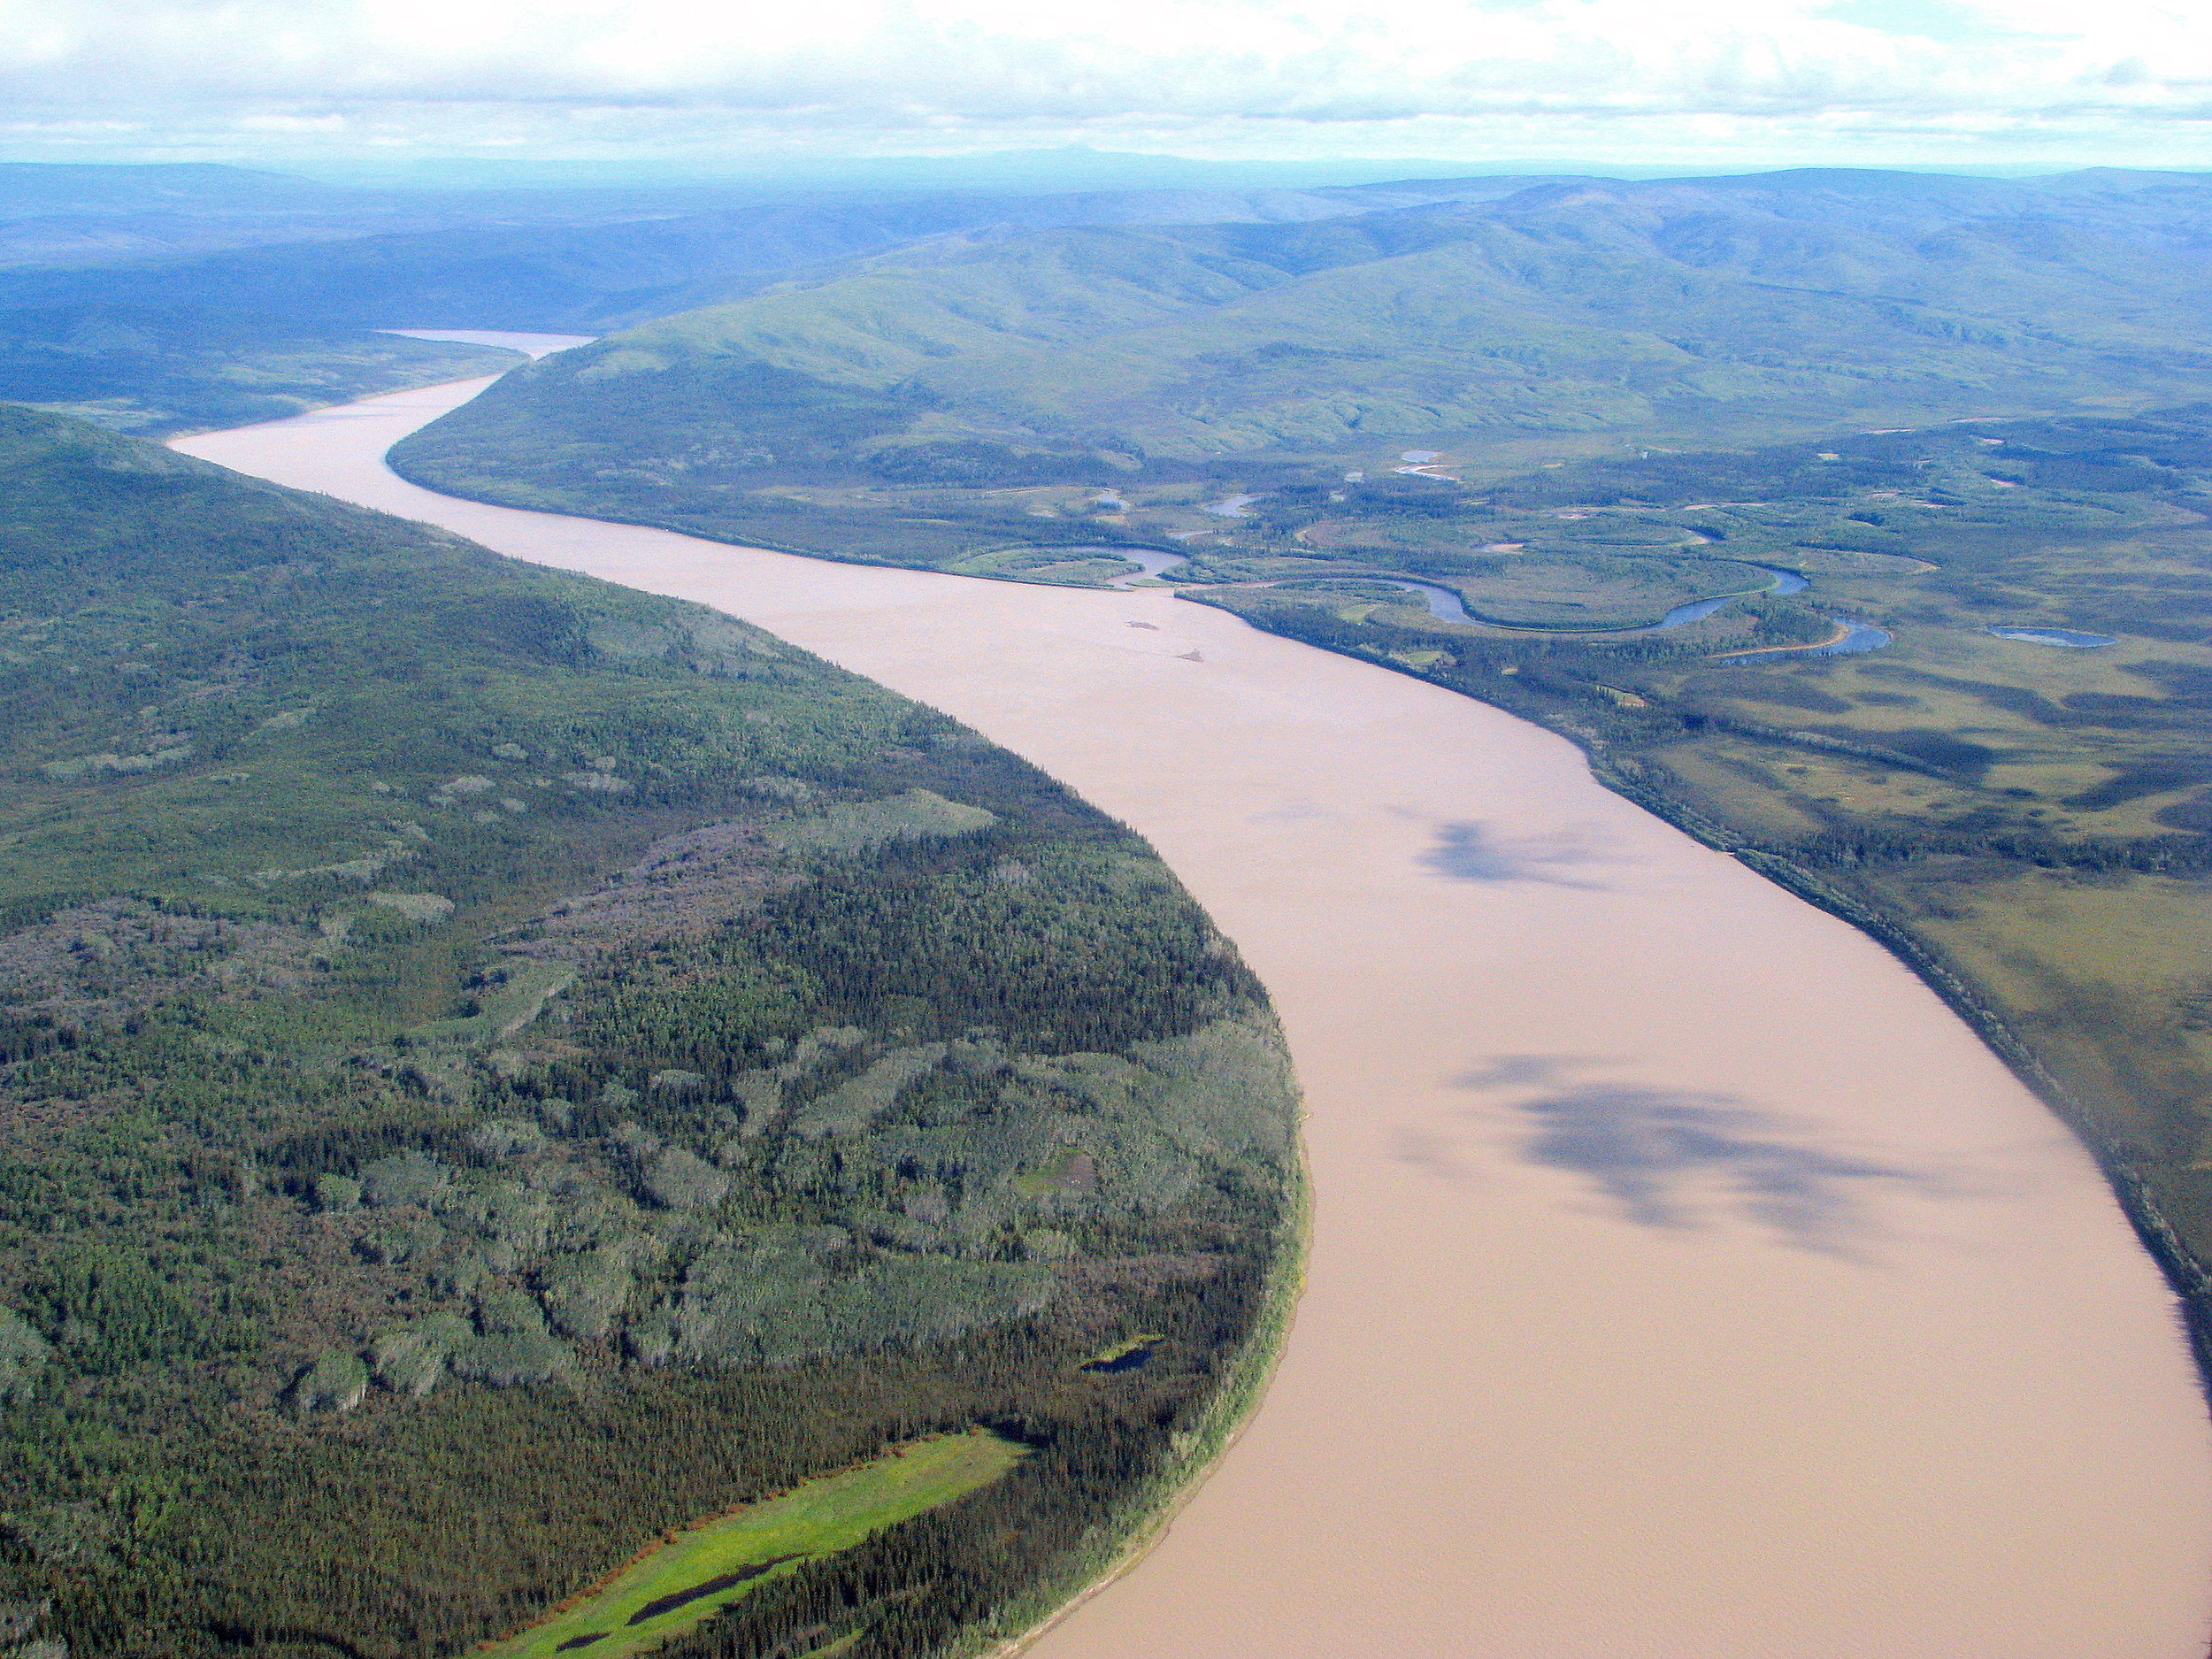 Aerial view of the Yukon River in interior Alaska.